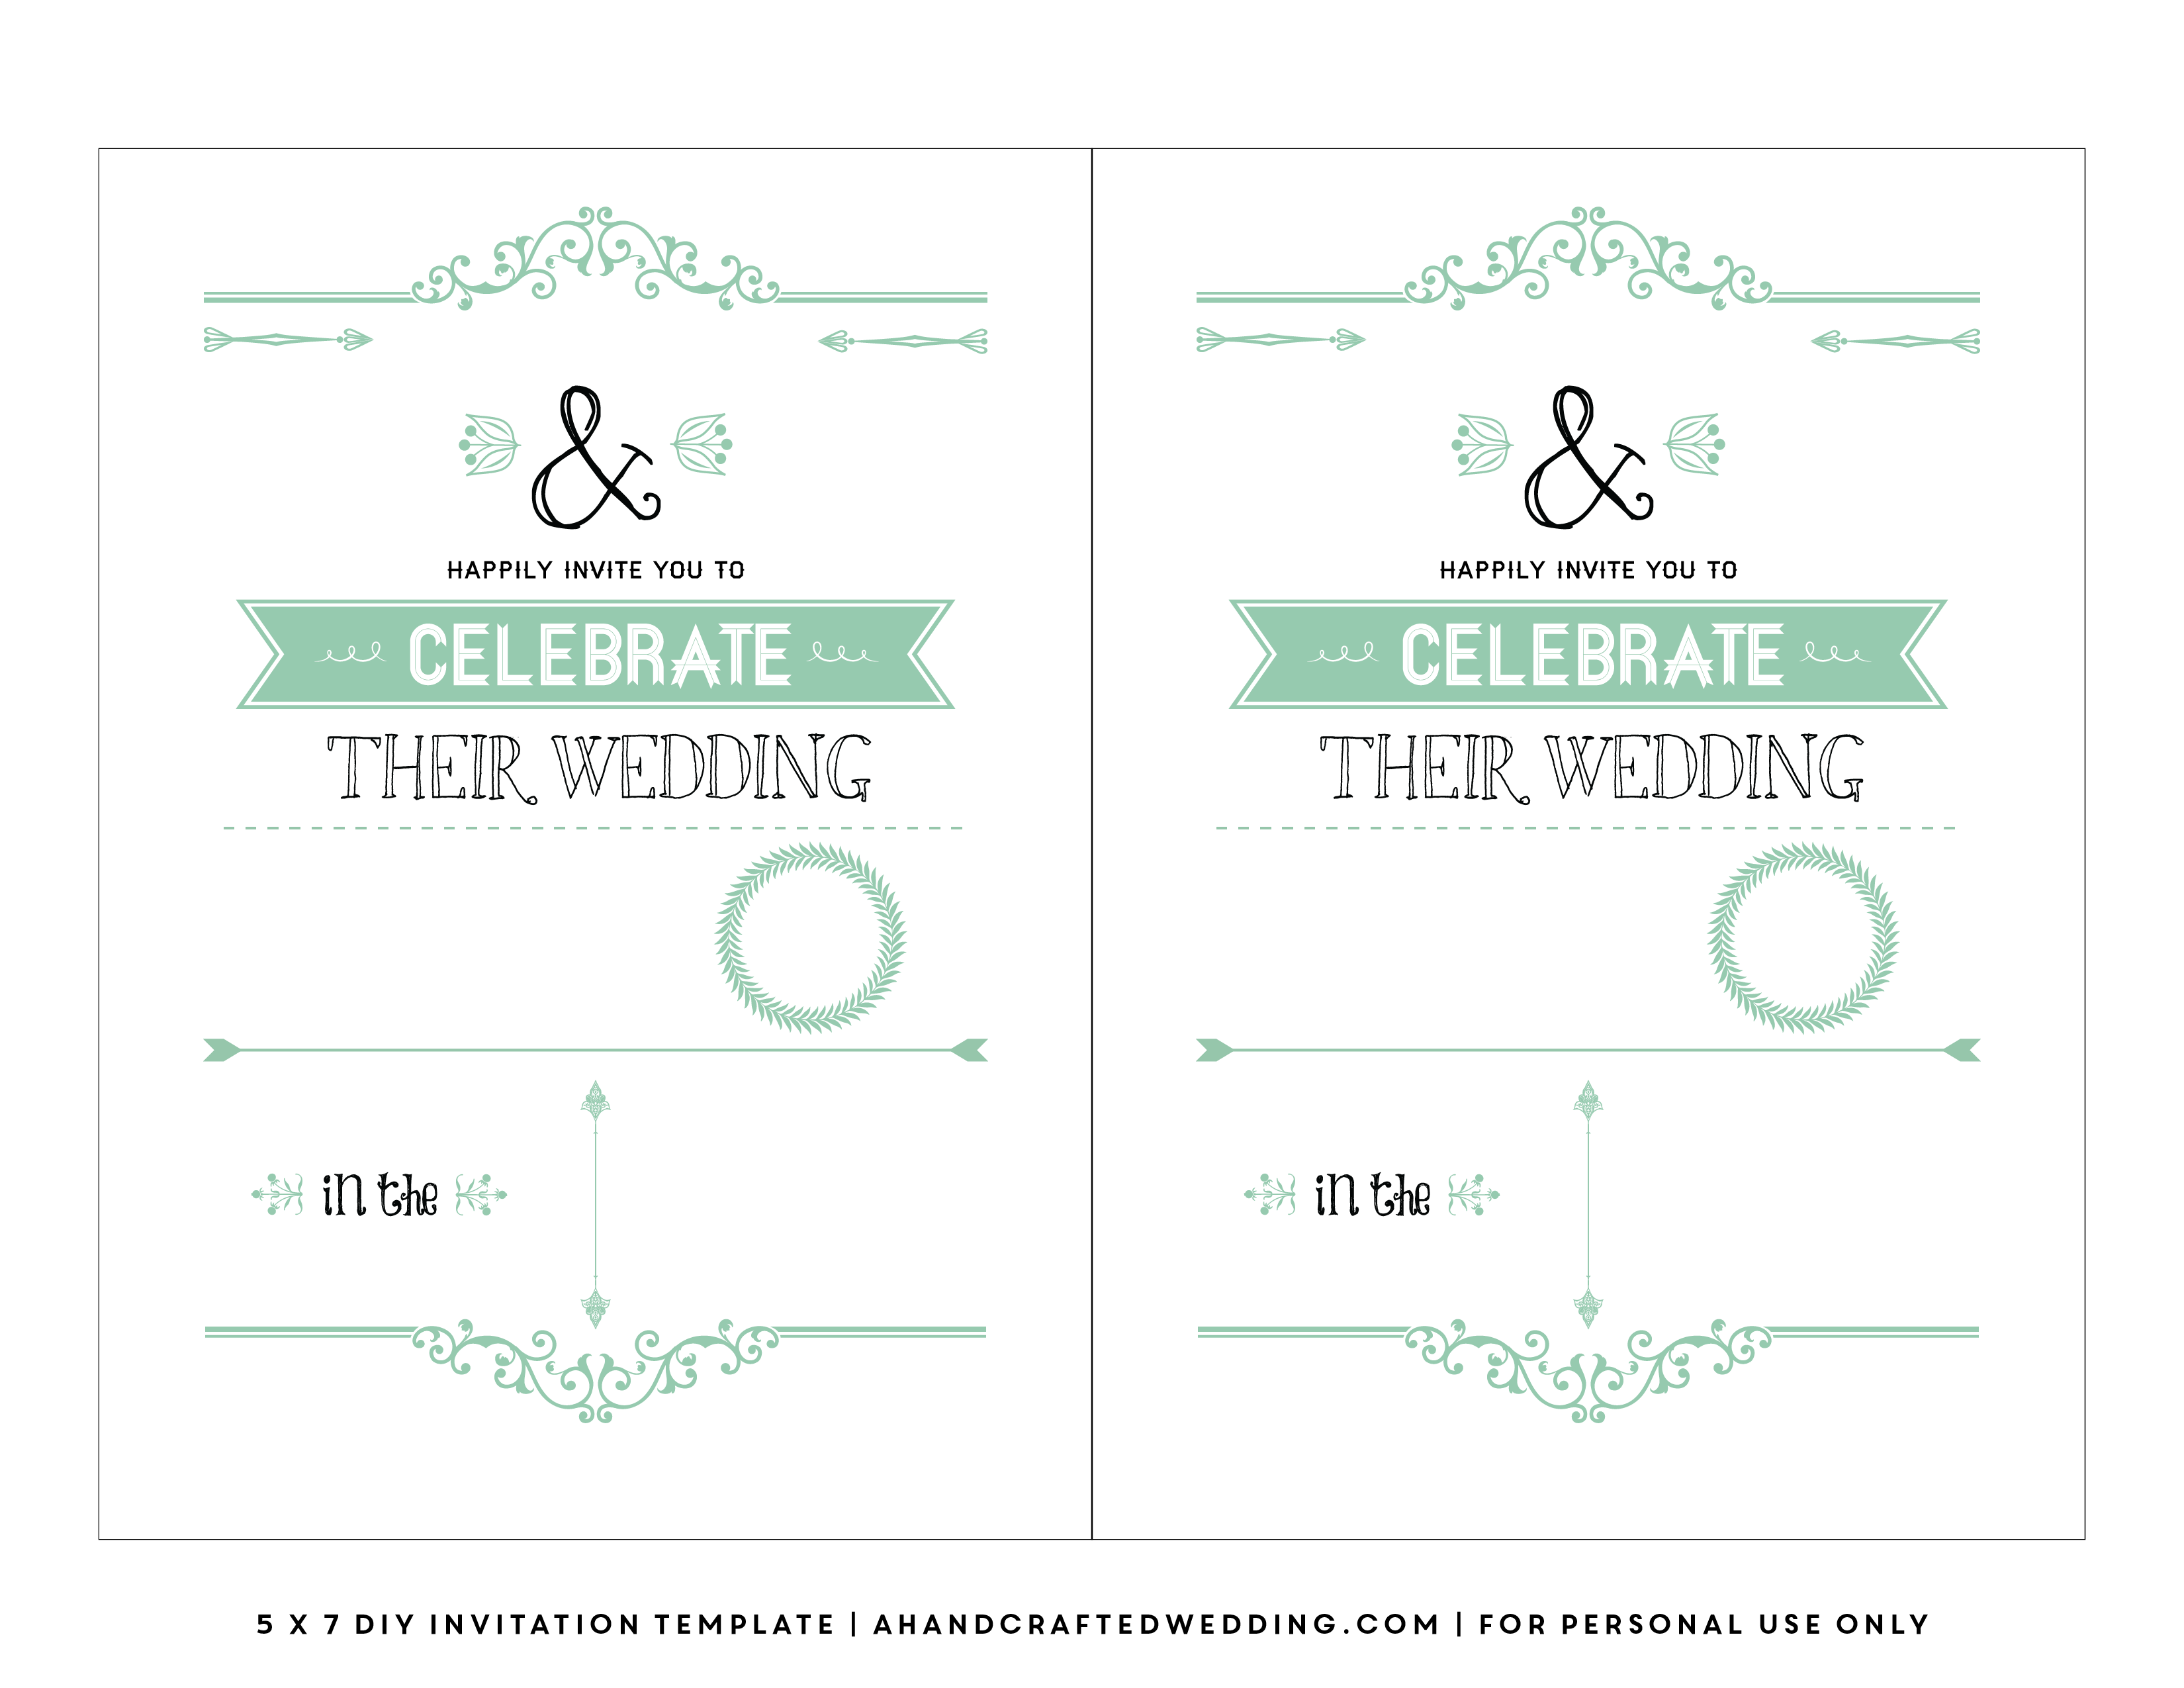 FREE Rustic Wedding Invitation Template Ahandcraftedwedding.com For